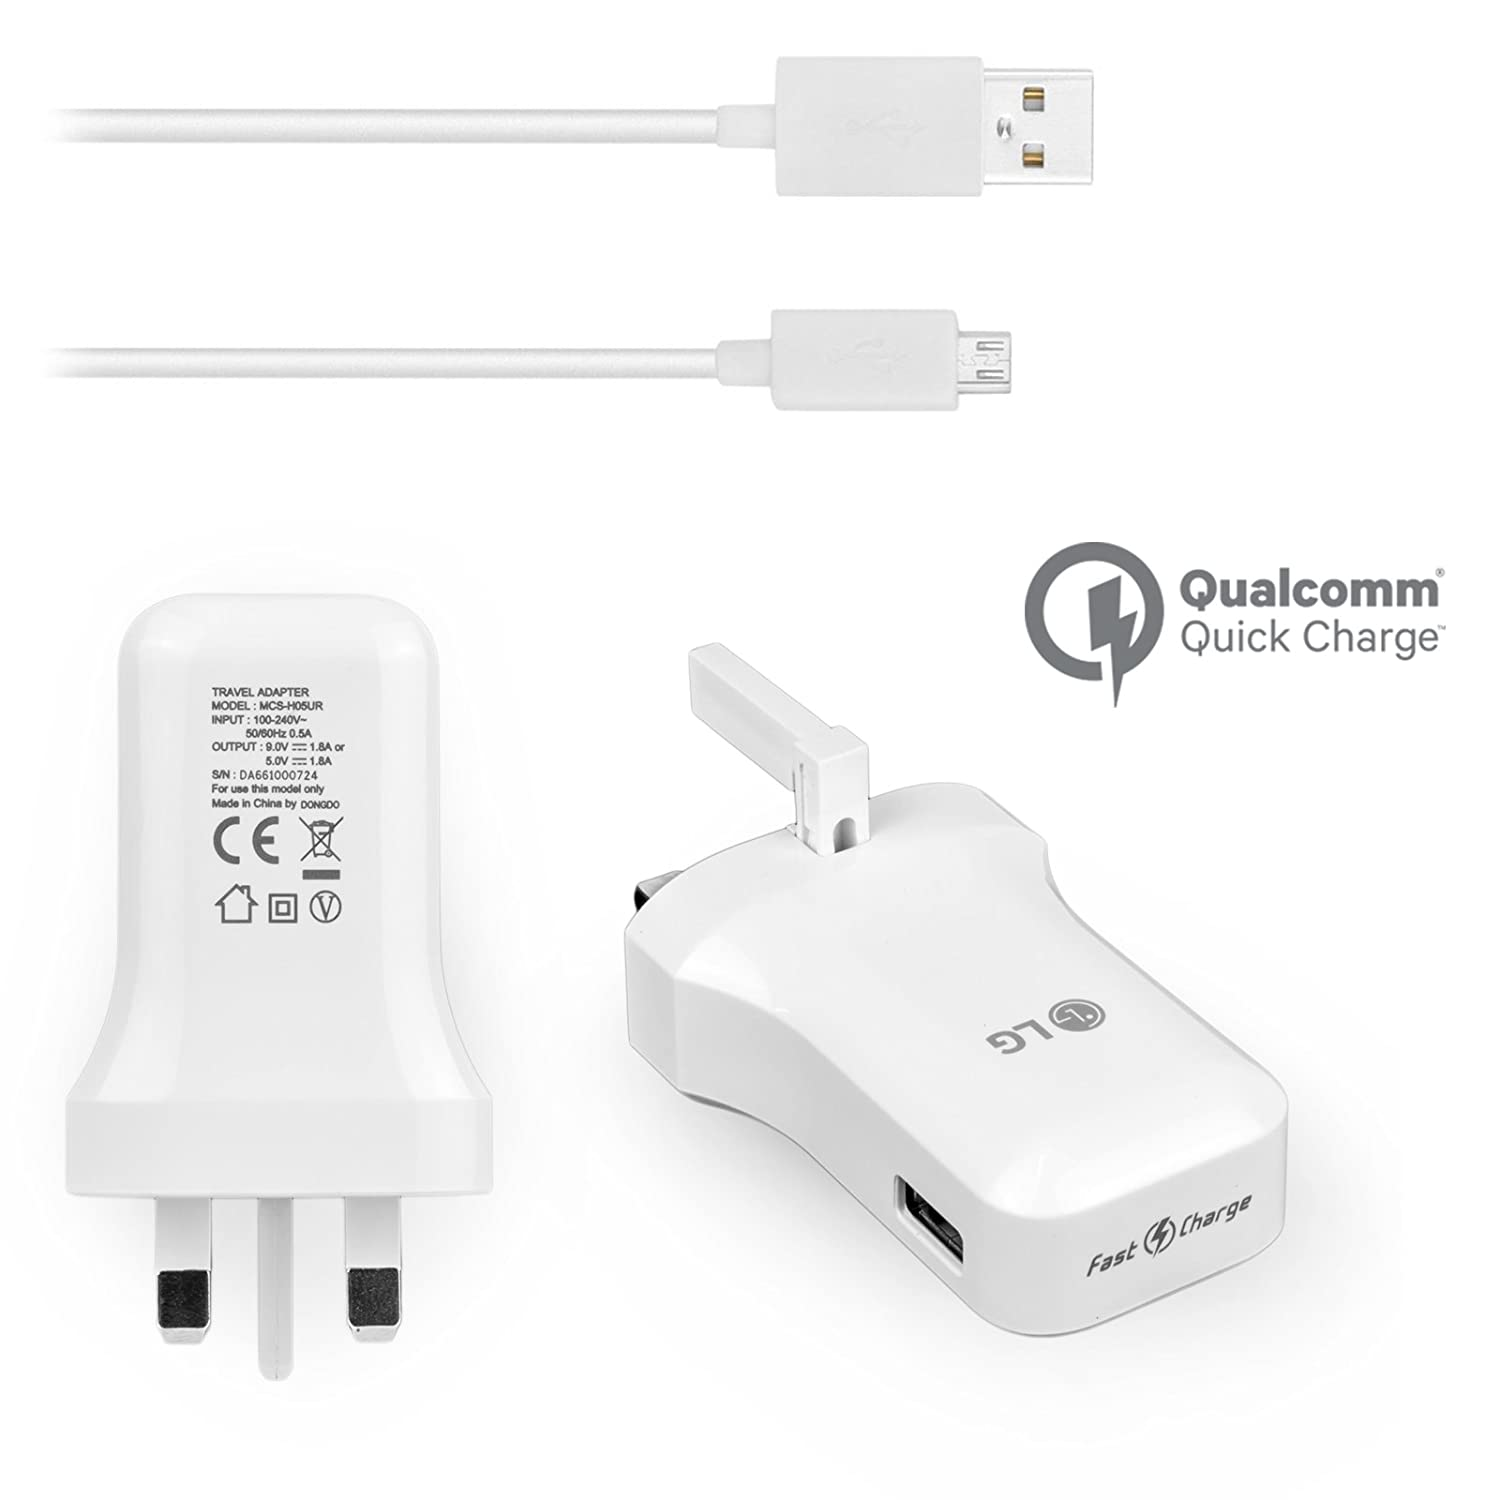 Genuine LG Mains Wall Charger Qualcomm Fast Charge 9 0/5 0V High Power 1 8A  for LG V10 LG G4 G3 G2 LG Flex 2 Nexus 5 Leon 4G with Generic USB Data